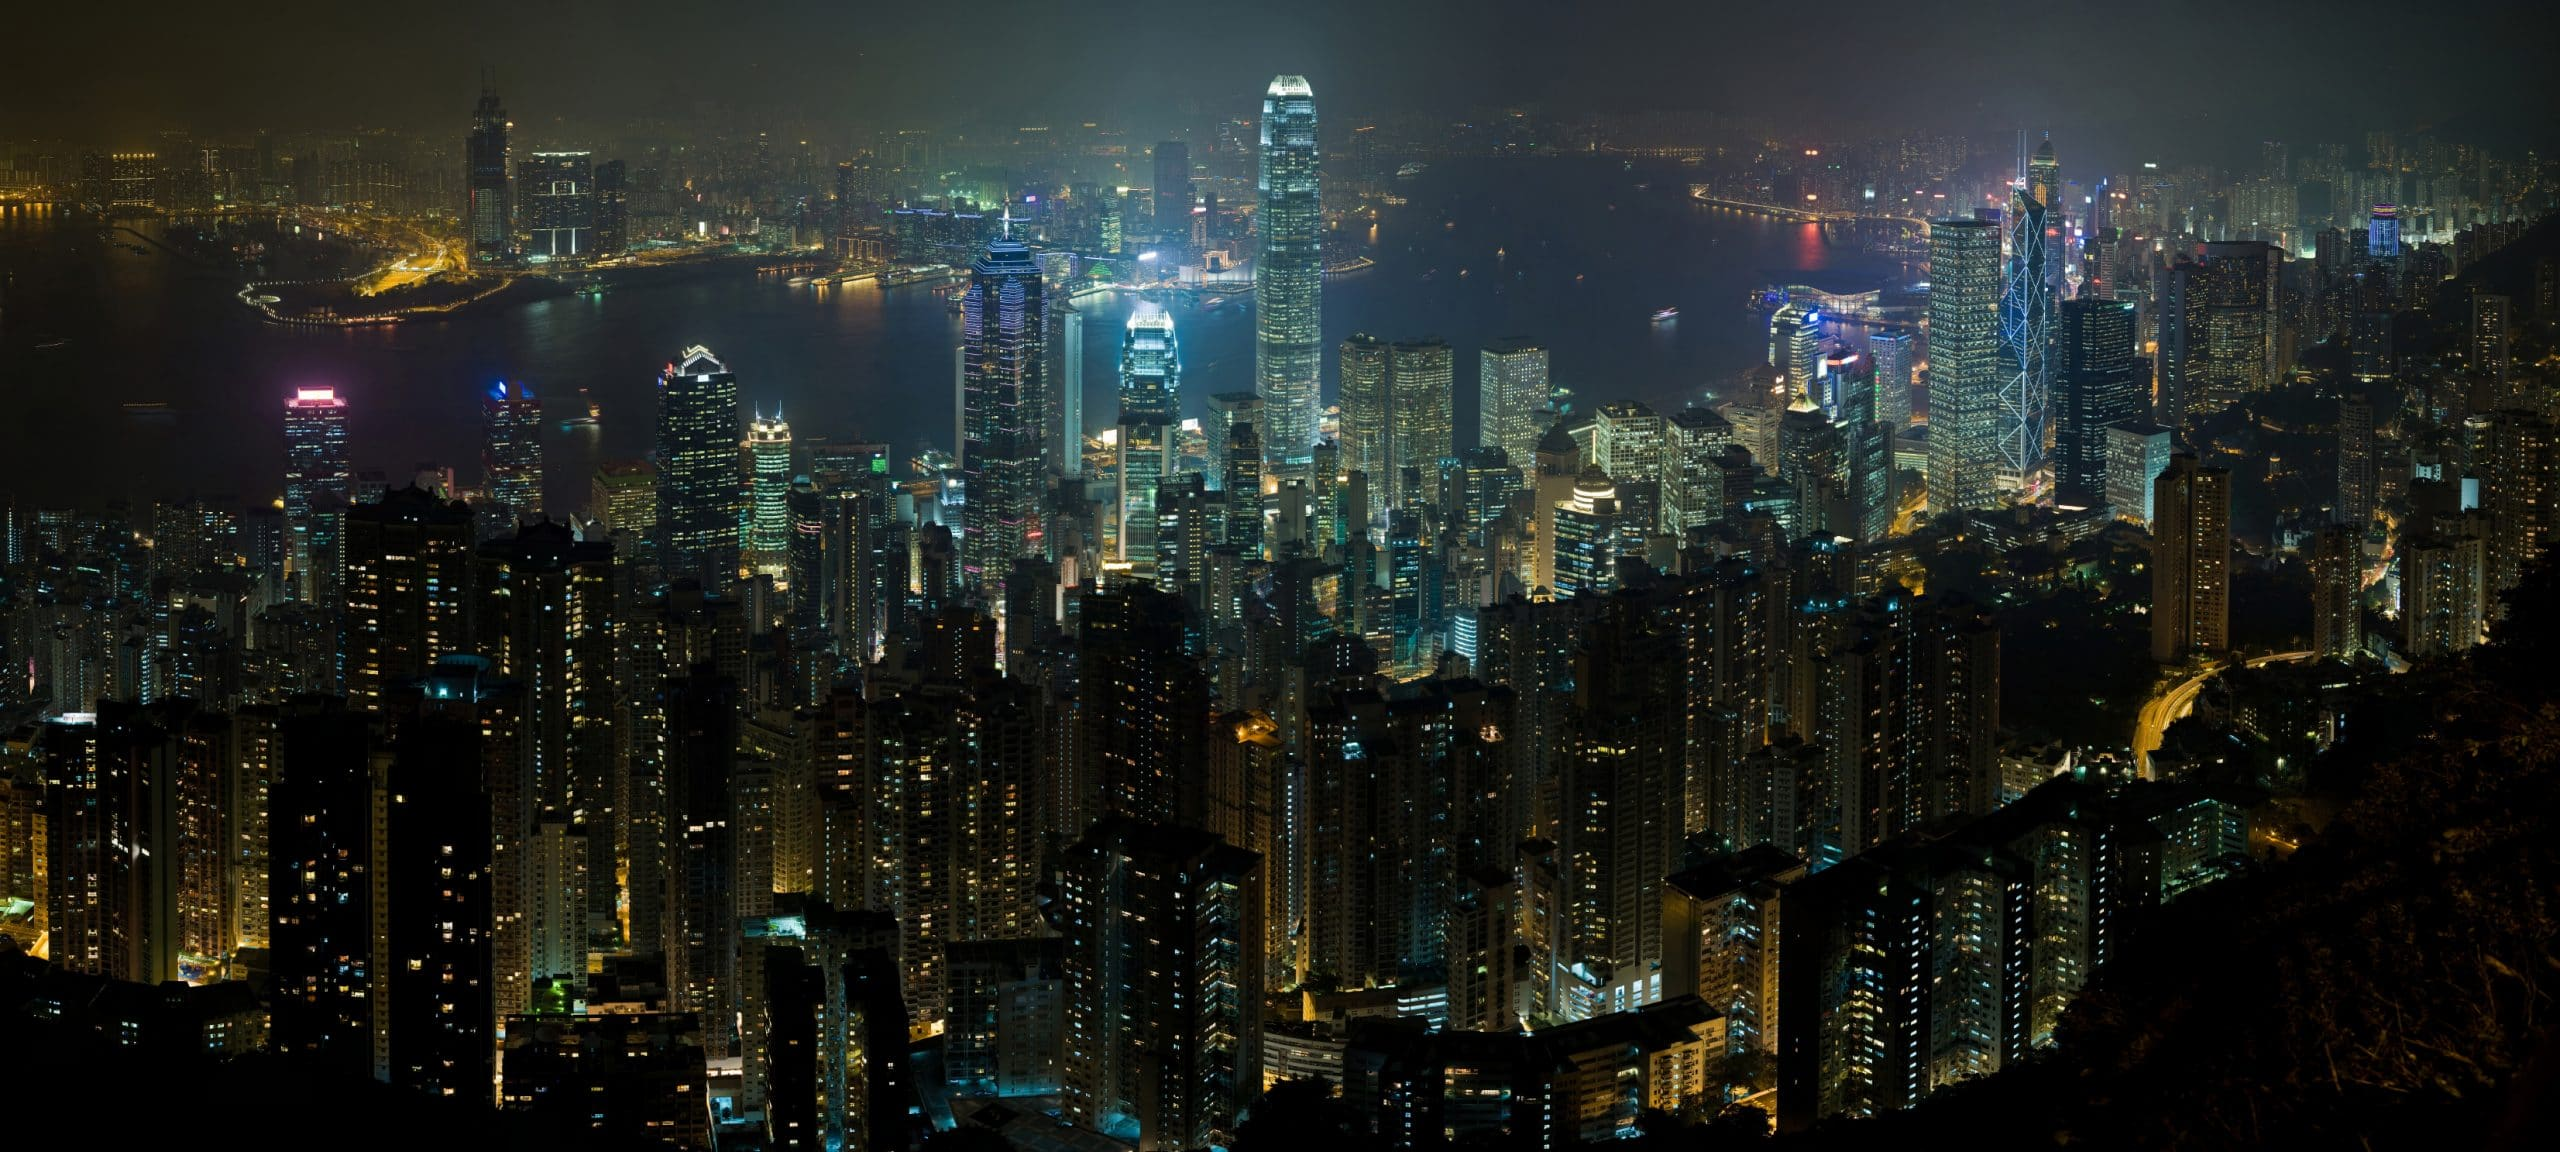 hong kong in 2051 essay